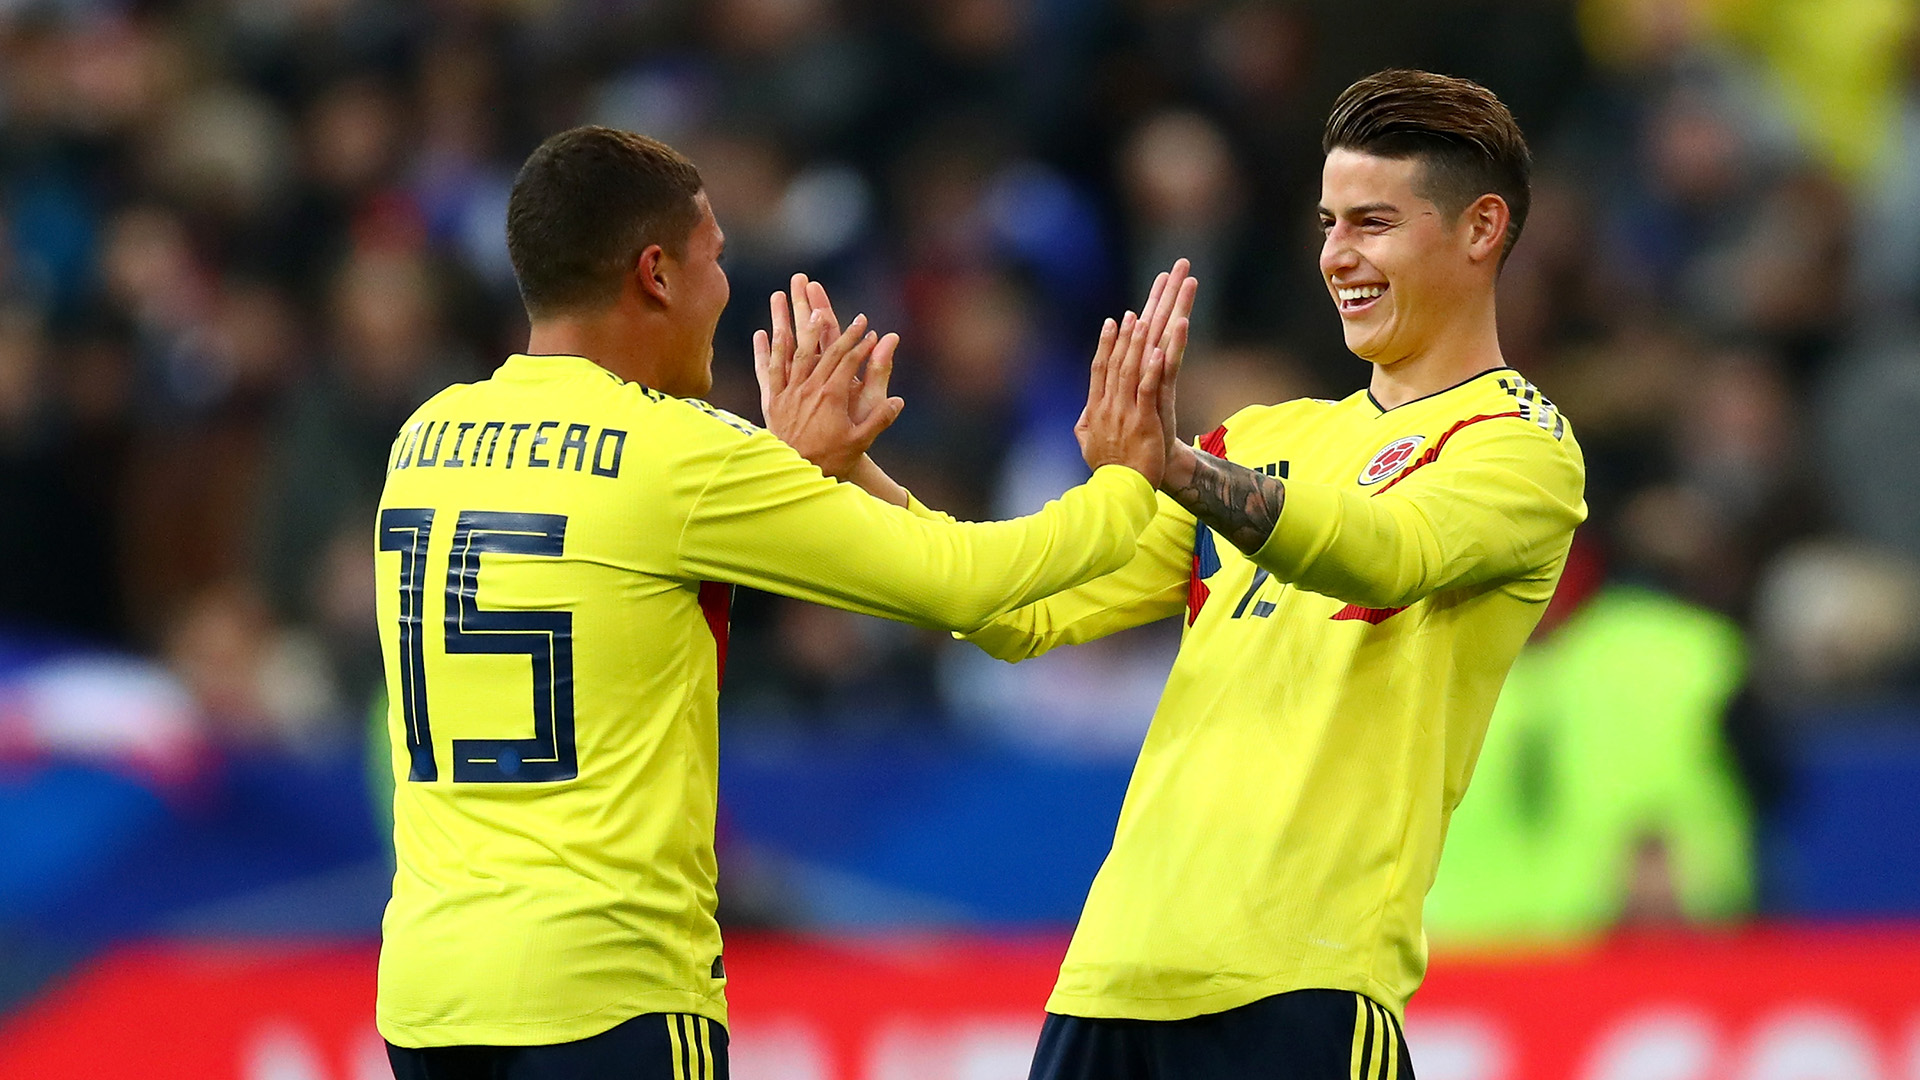 Colombia's James Rodriguez will not play vs. Japan after calf injury